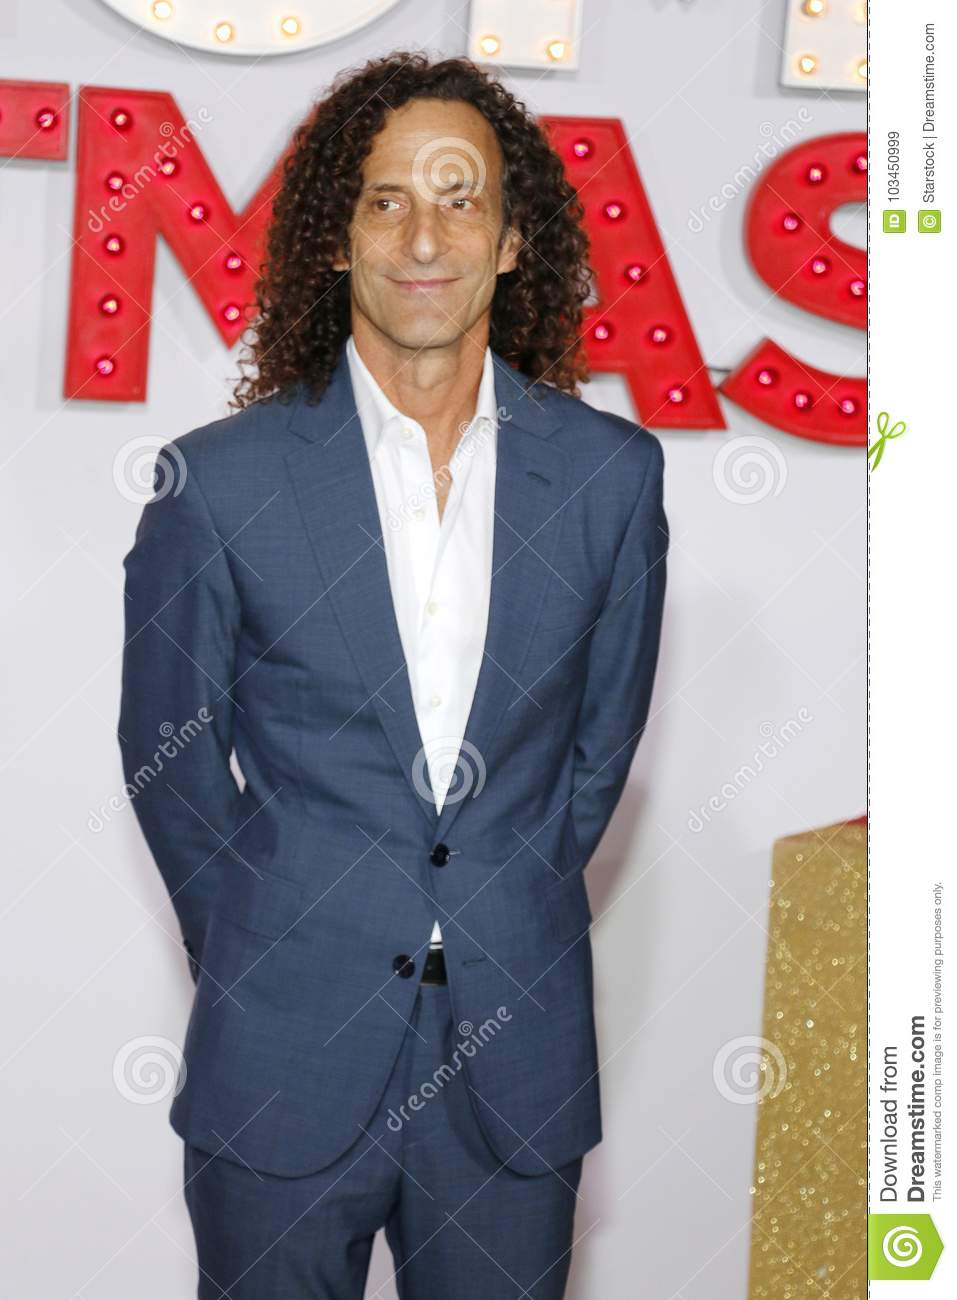 Kenny G Christmas.Kenny G Editorial Stock Image Image Of Held Modine 103450999